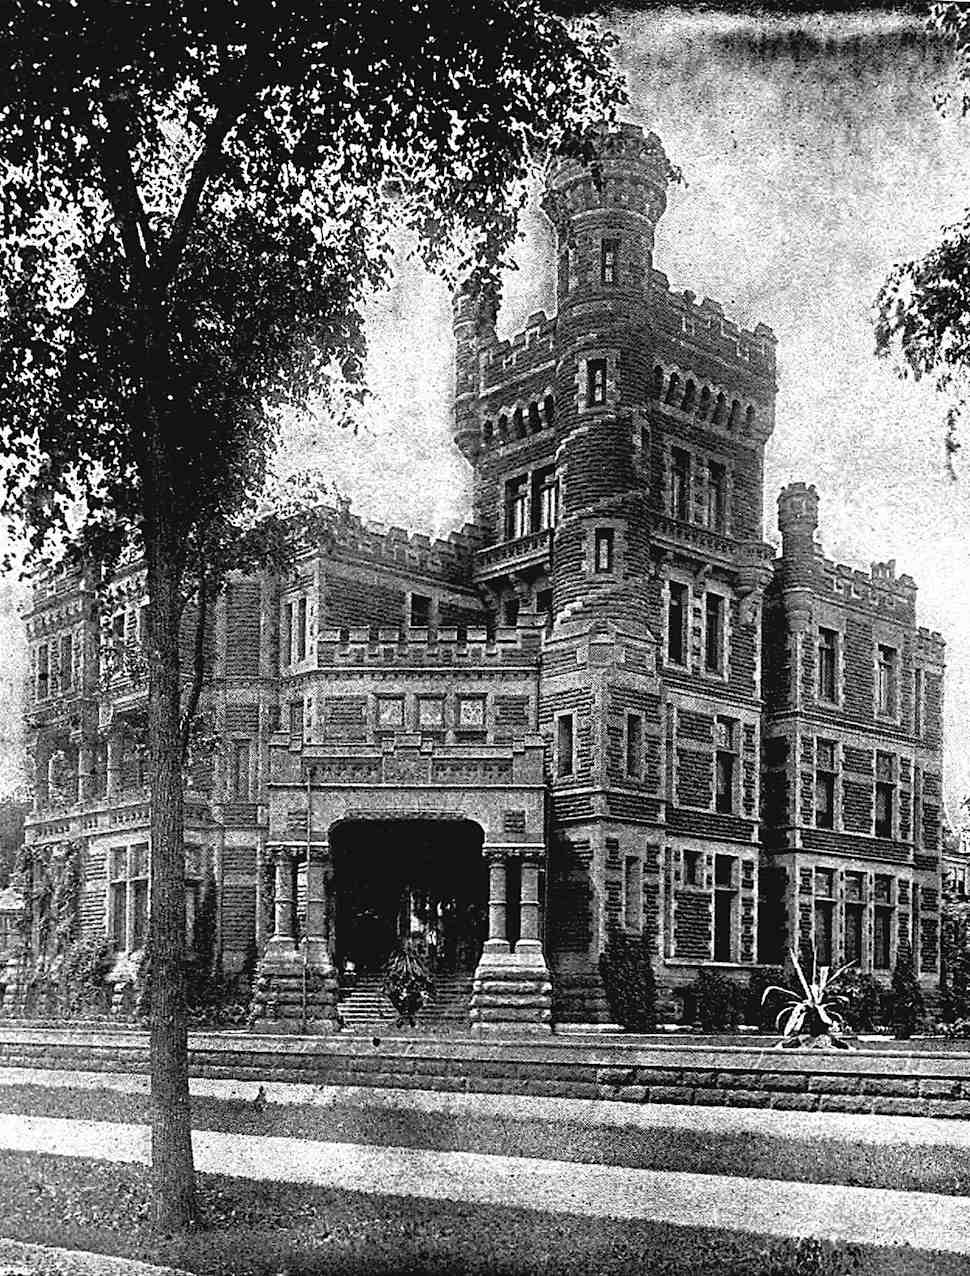 a private mansion in 1800s Chicago, a photograph